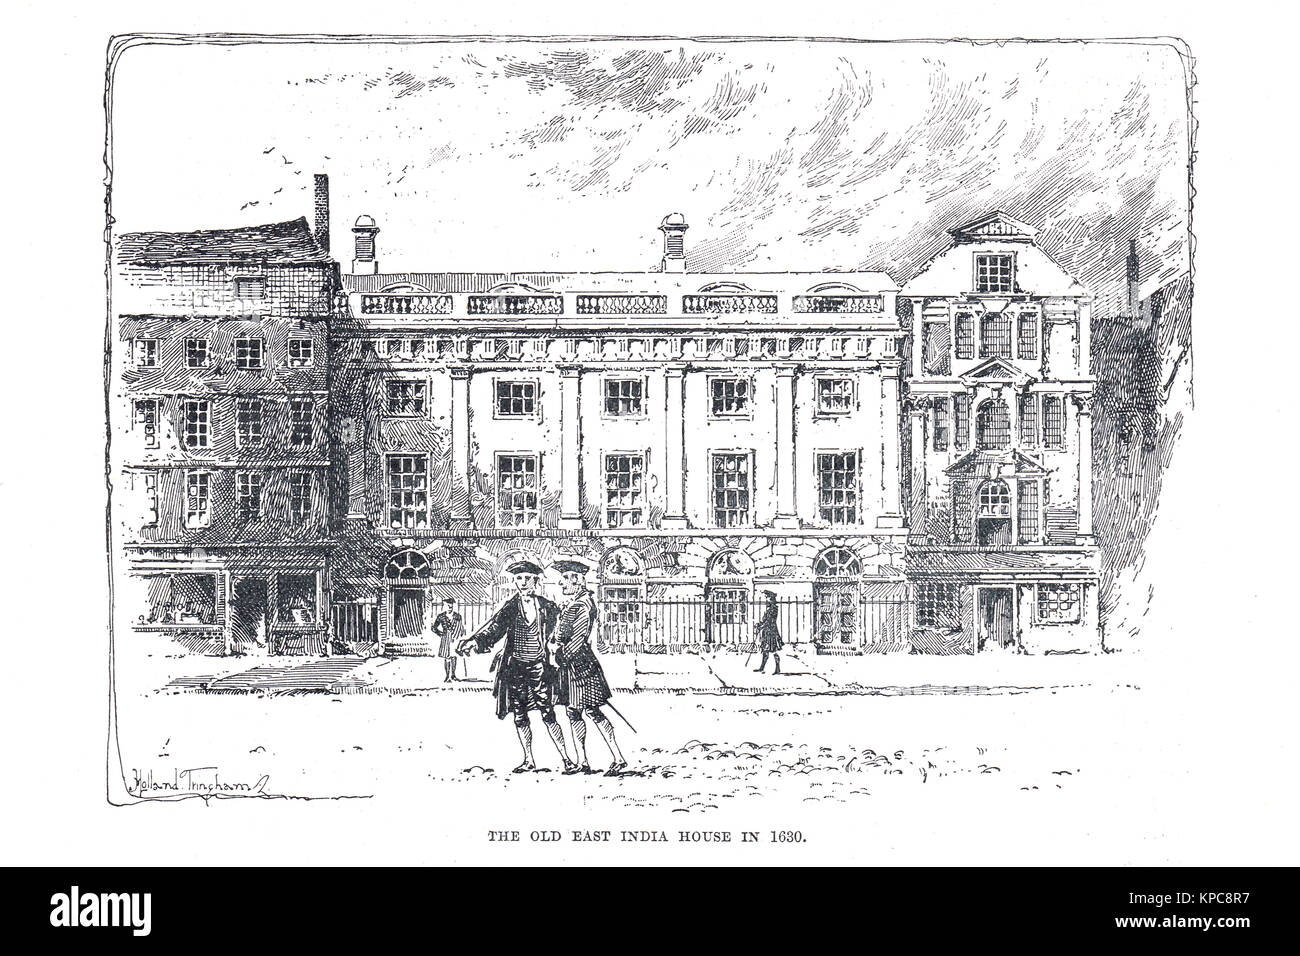 The Old East India house, London in 1630 - Stock Image